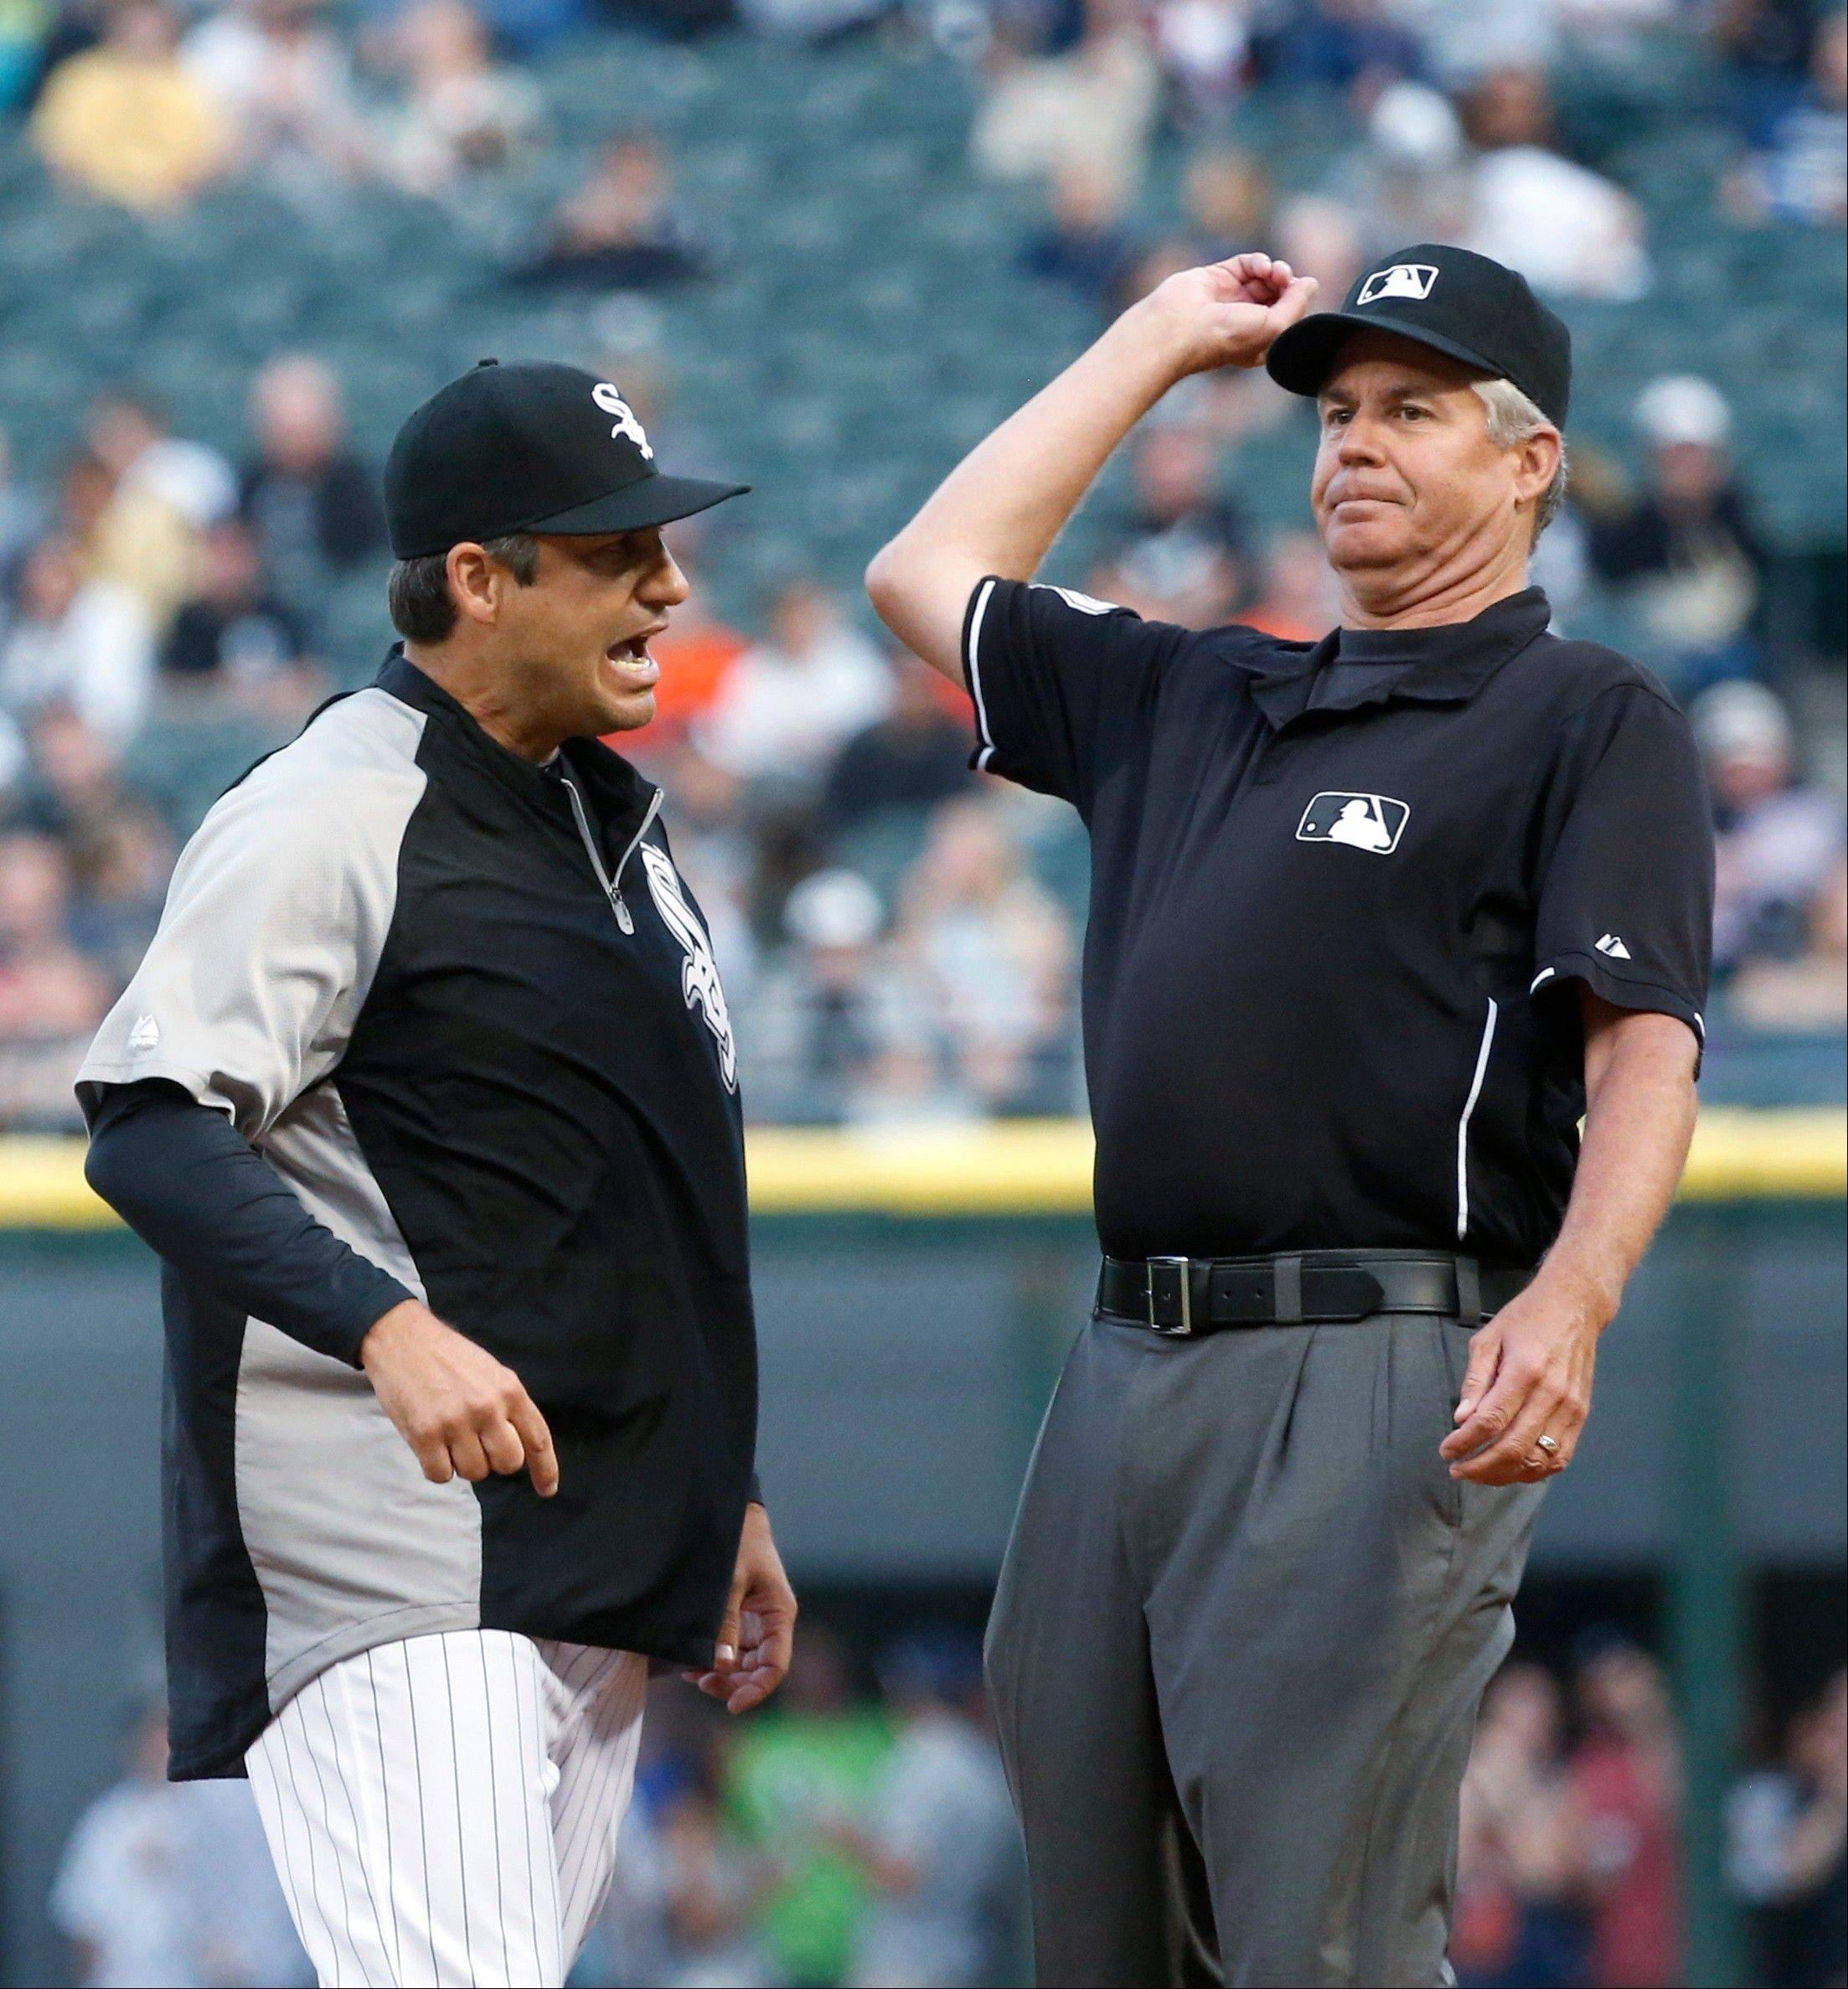 First base umpire Gary Darling, right, throws out Chicago White Sox manager Robin Ventura as Ventura argues Darling's call that first baseman Adam Dunn interfered with Detroit Tigers' Torii Hunter getting back to first on a rundown during the first inning of a baseball game Tuesday, July 23, 2013, in Chicago. (AP Photo/Charles Rex Arbogast)